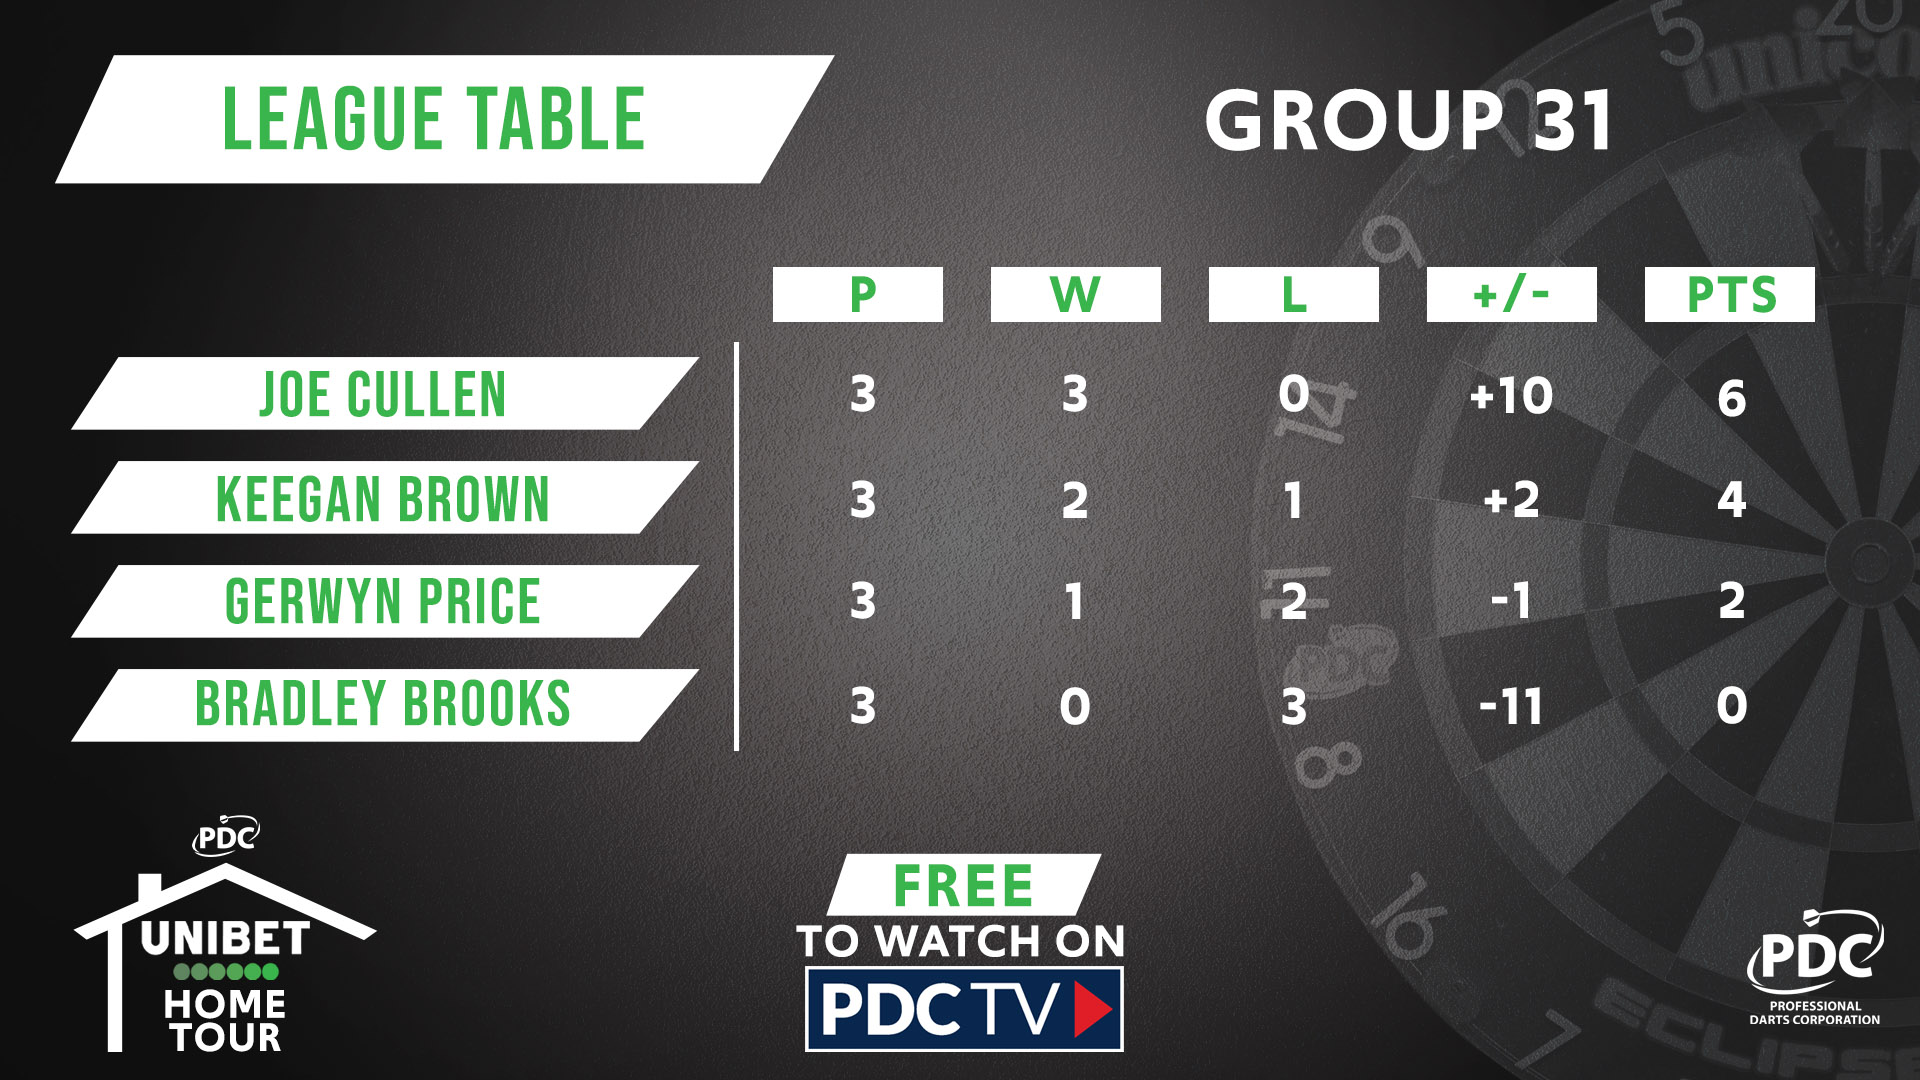 Group 31 table